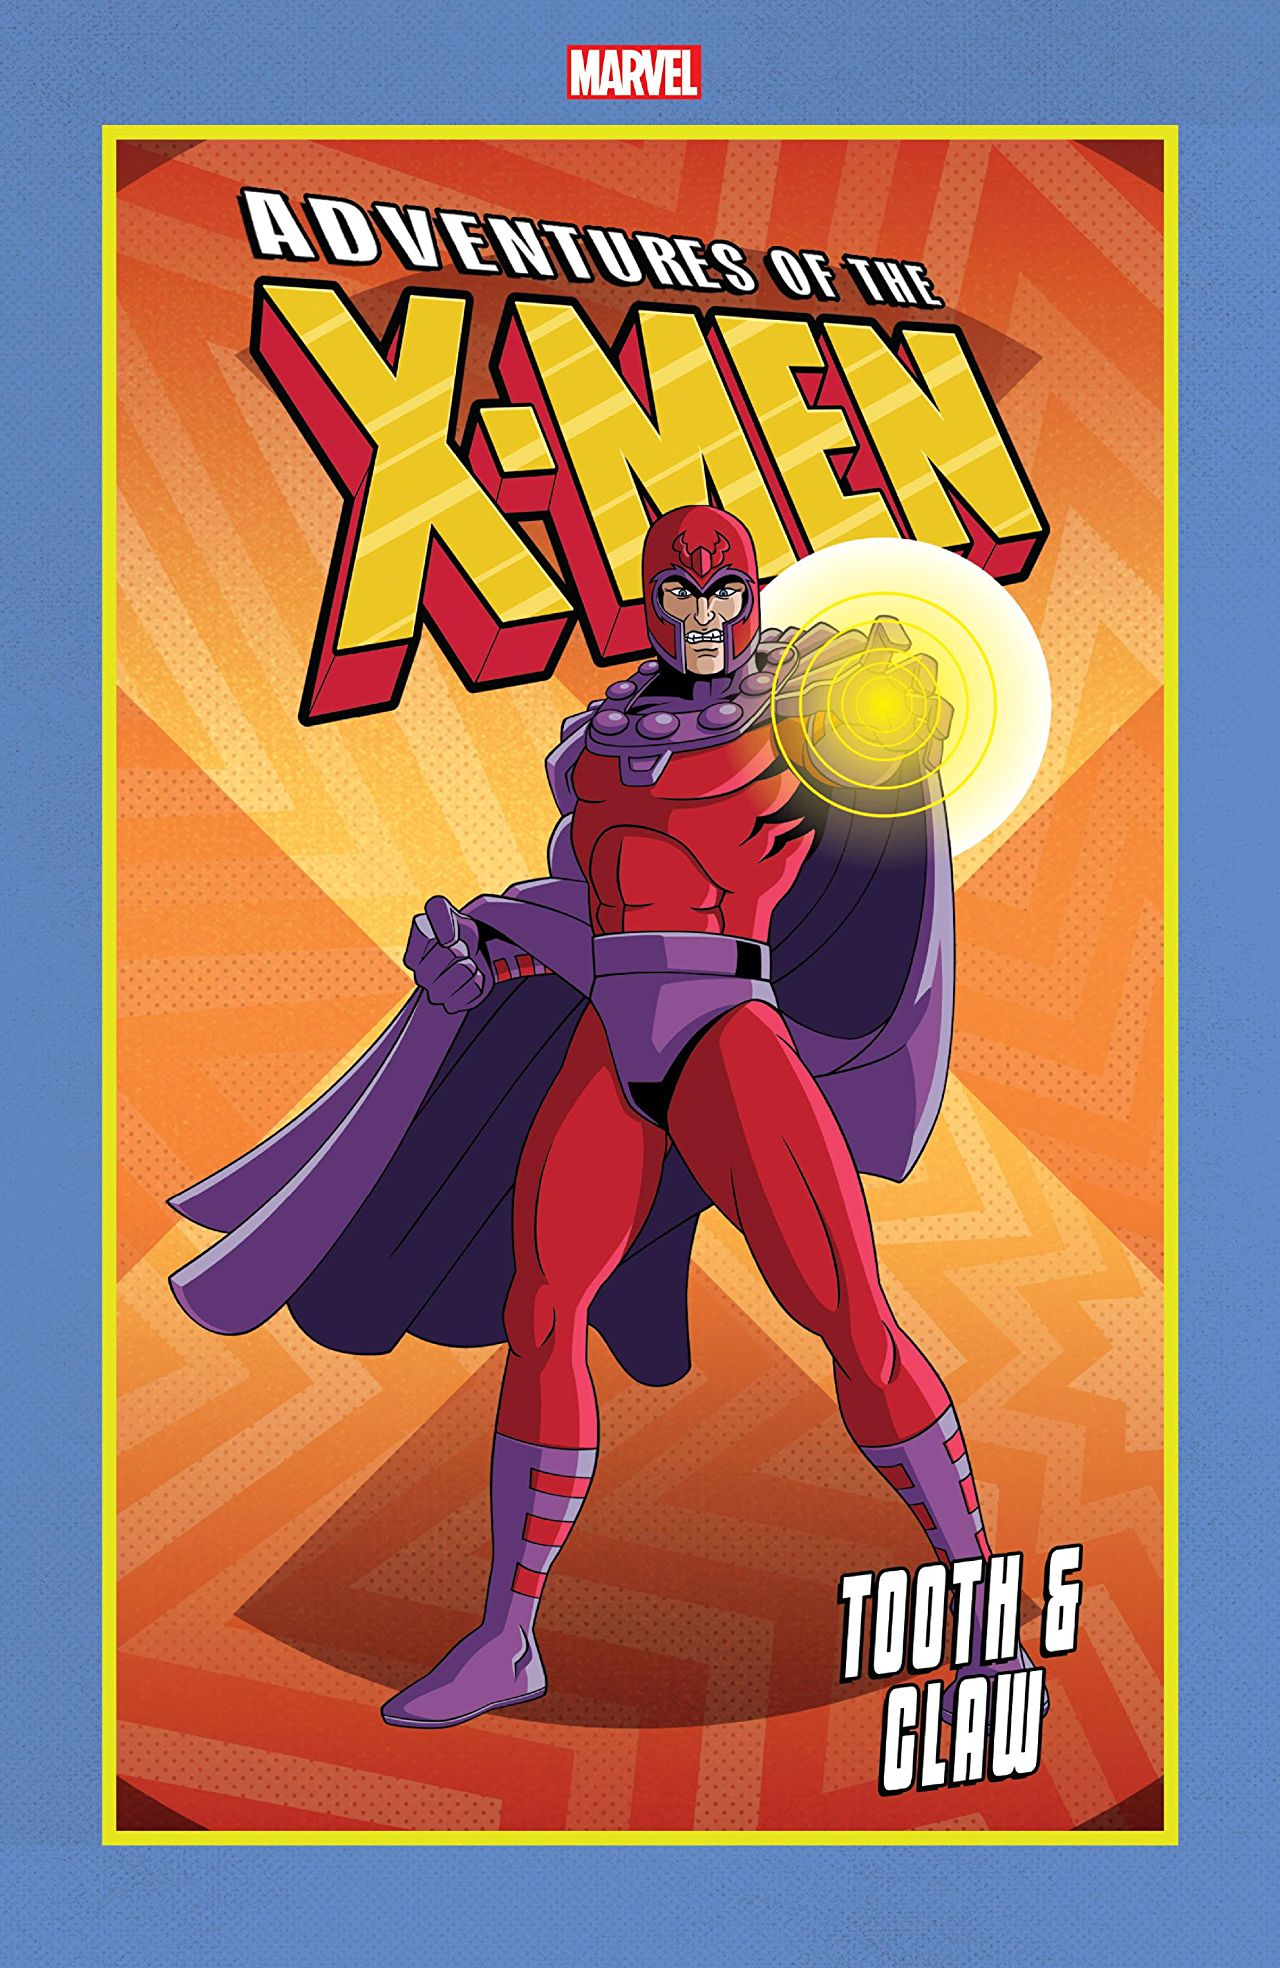 Adventures of the X-Men: Tooth and Claw Review